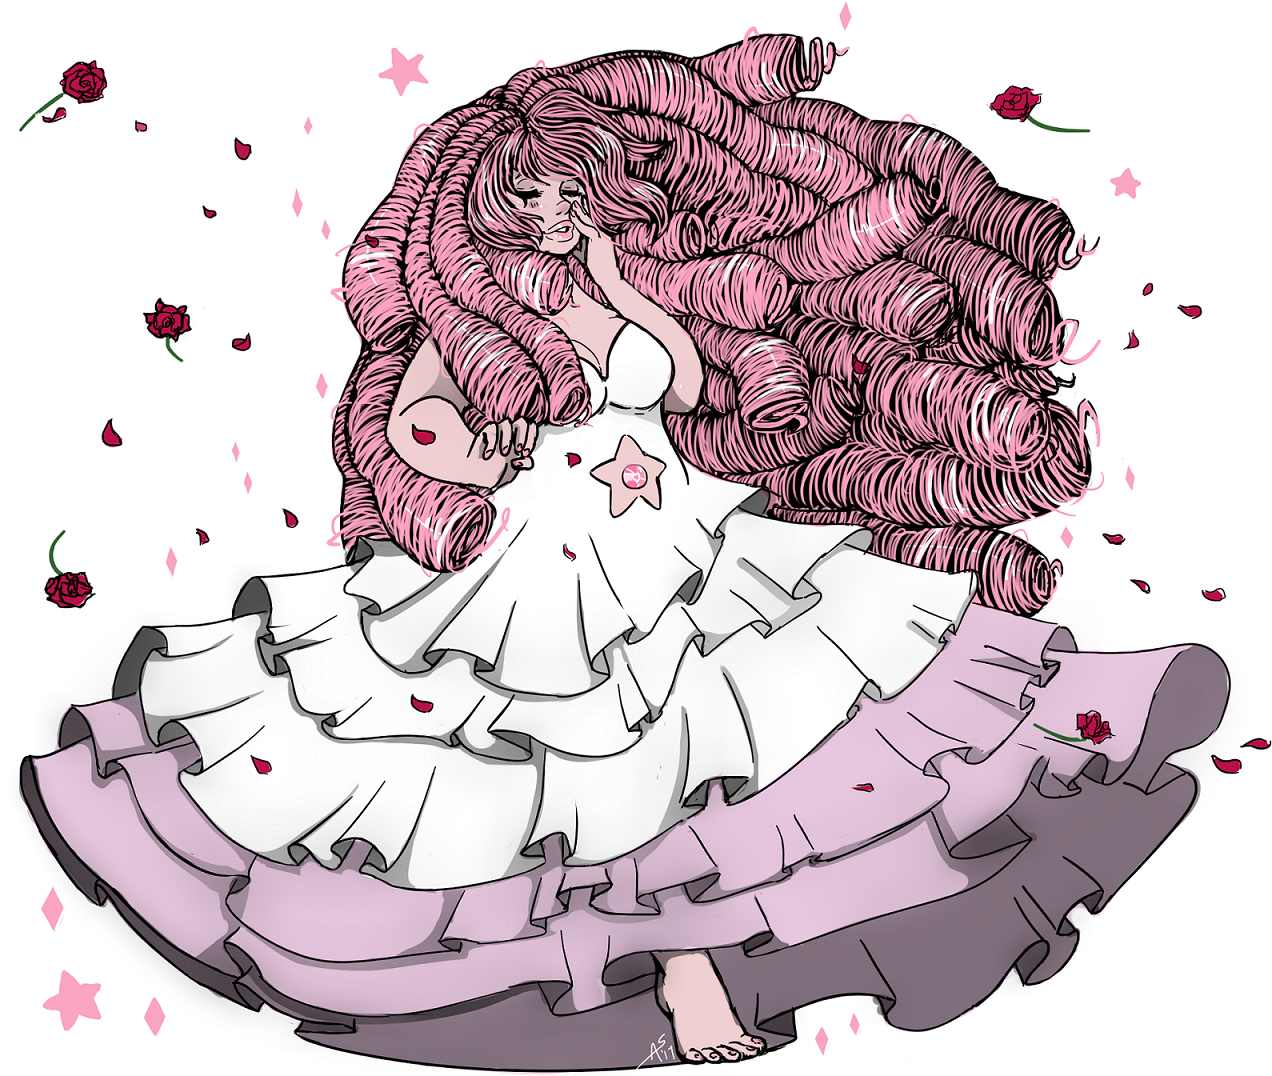 Cleaned up and colored that Rose Quartz sketch. I was thinking of Usagi/Serenity when drawing the dress. I put a lot more time into this than I planned… I have a project I should work on… 9w9;;